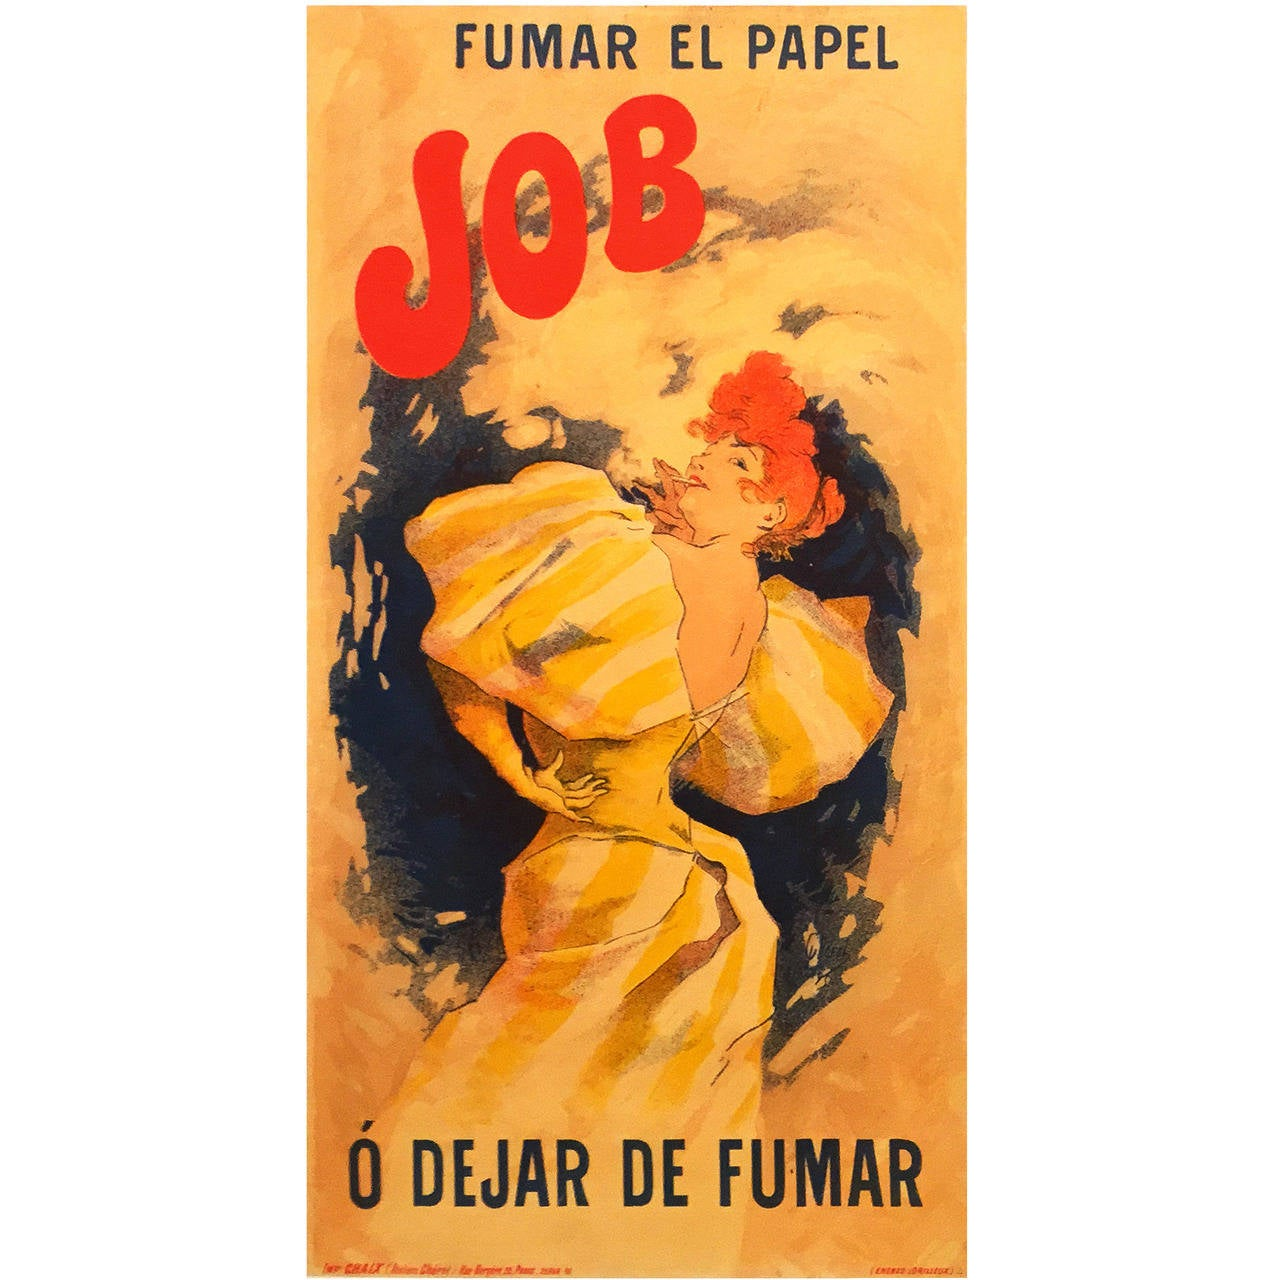 French Belle Époque Period Poster for Job by Jules Chéret, 1895